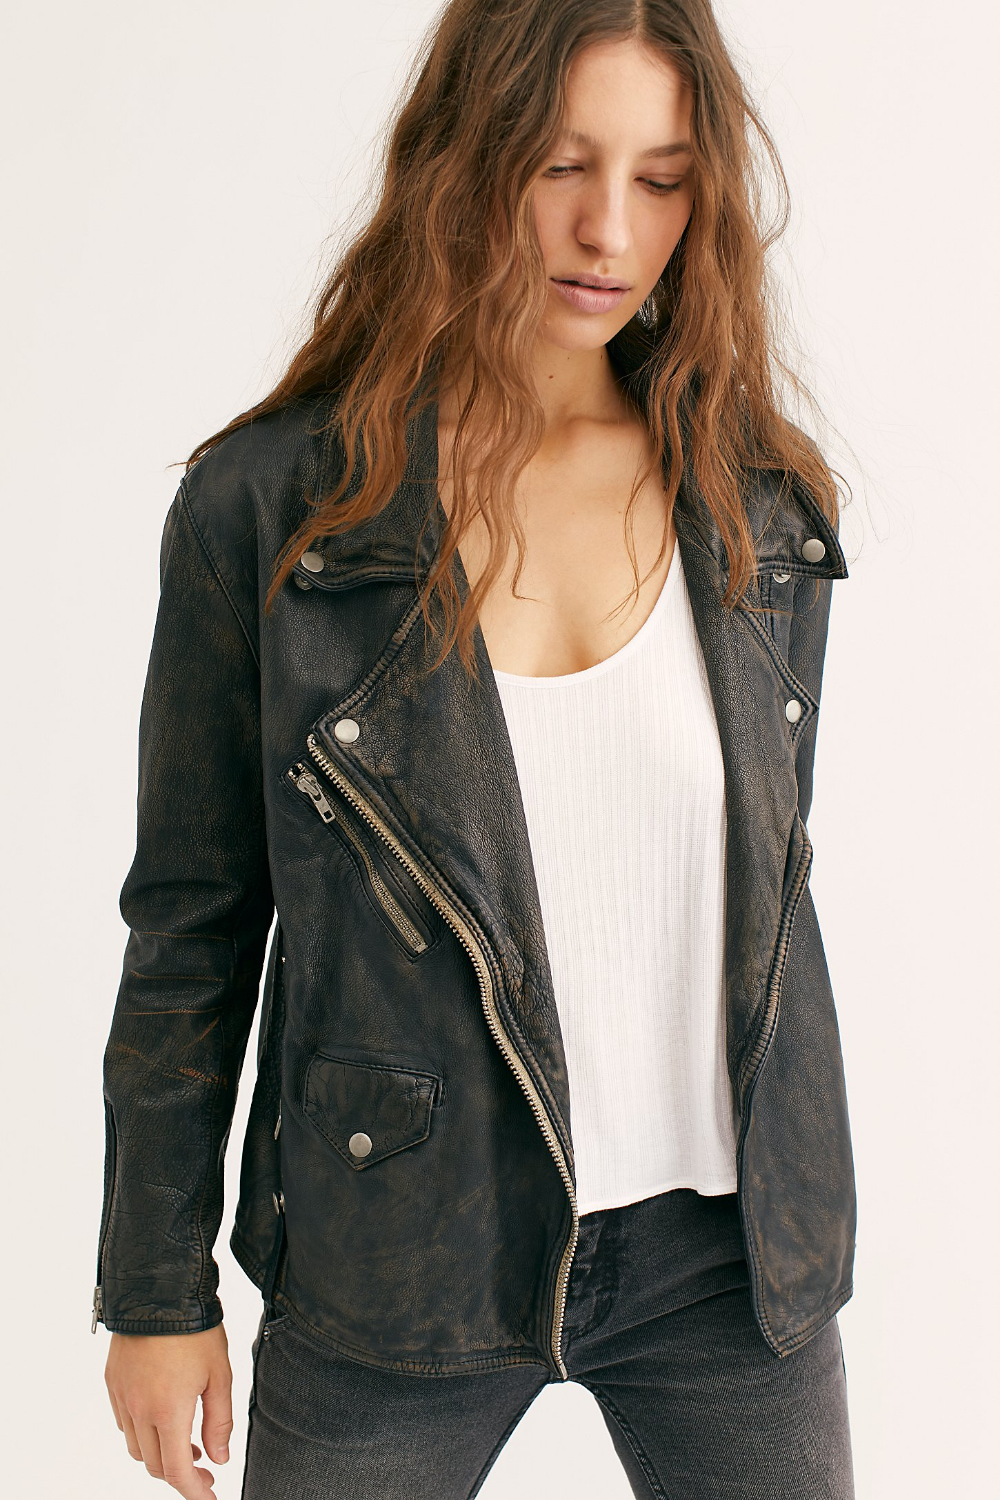 Jealousy Leather Moto Jacket (With images) Leather